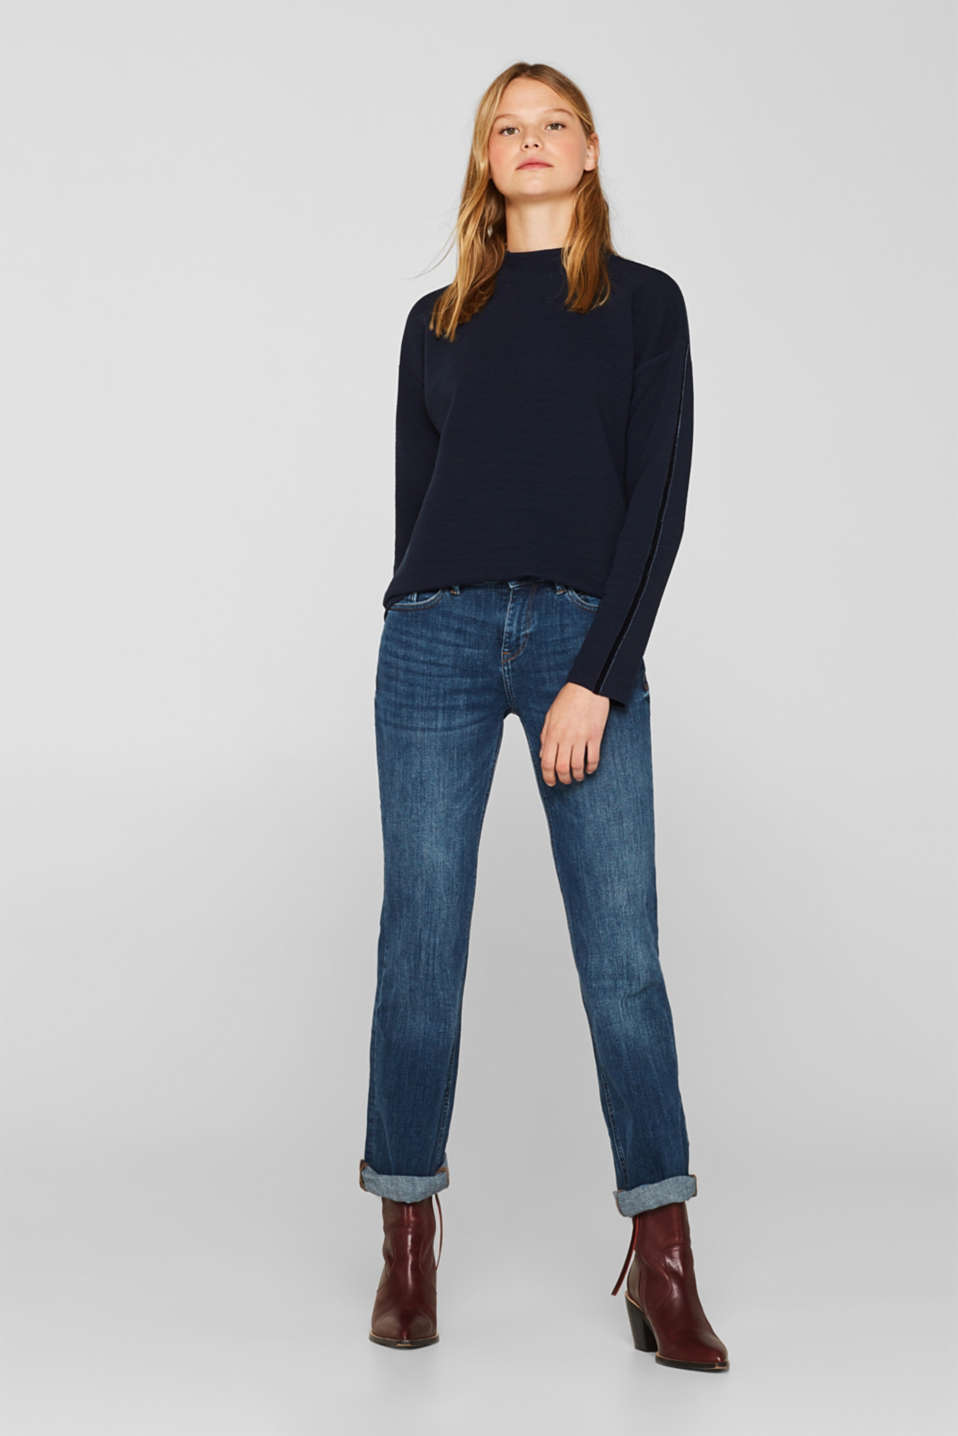 Stretch long sleeve top with velvet details, NAVY, detail image number 1